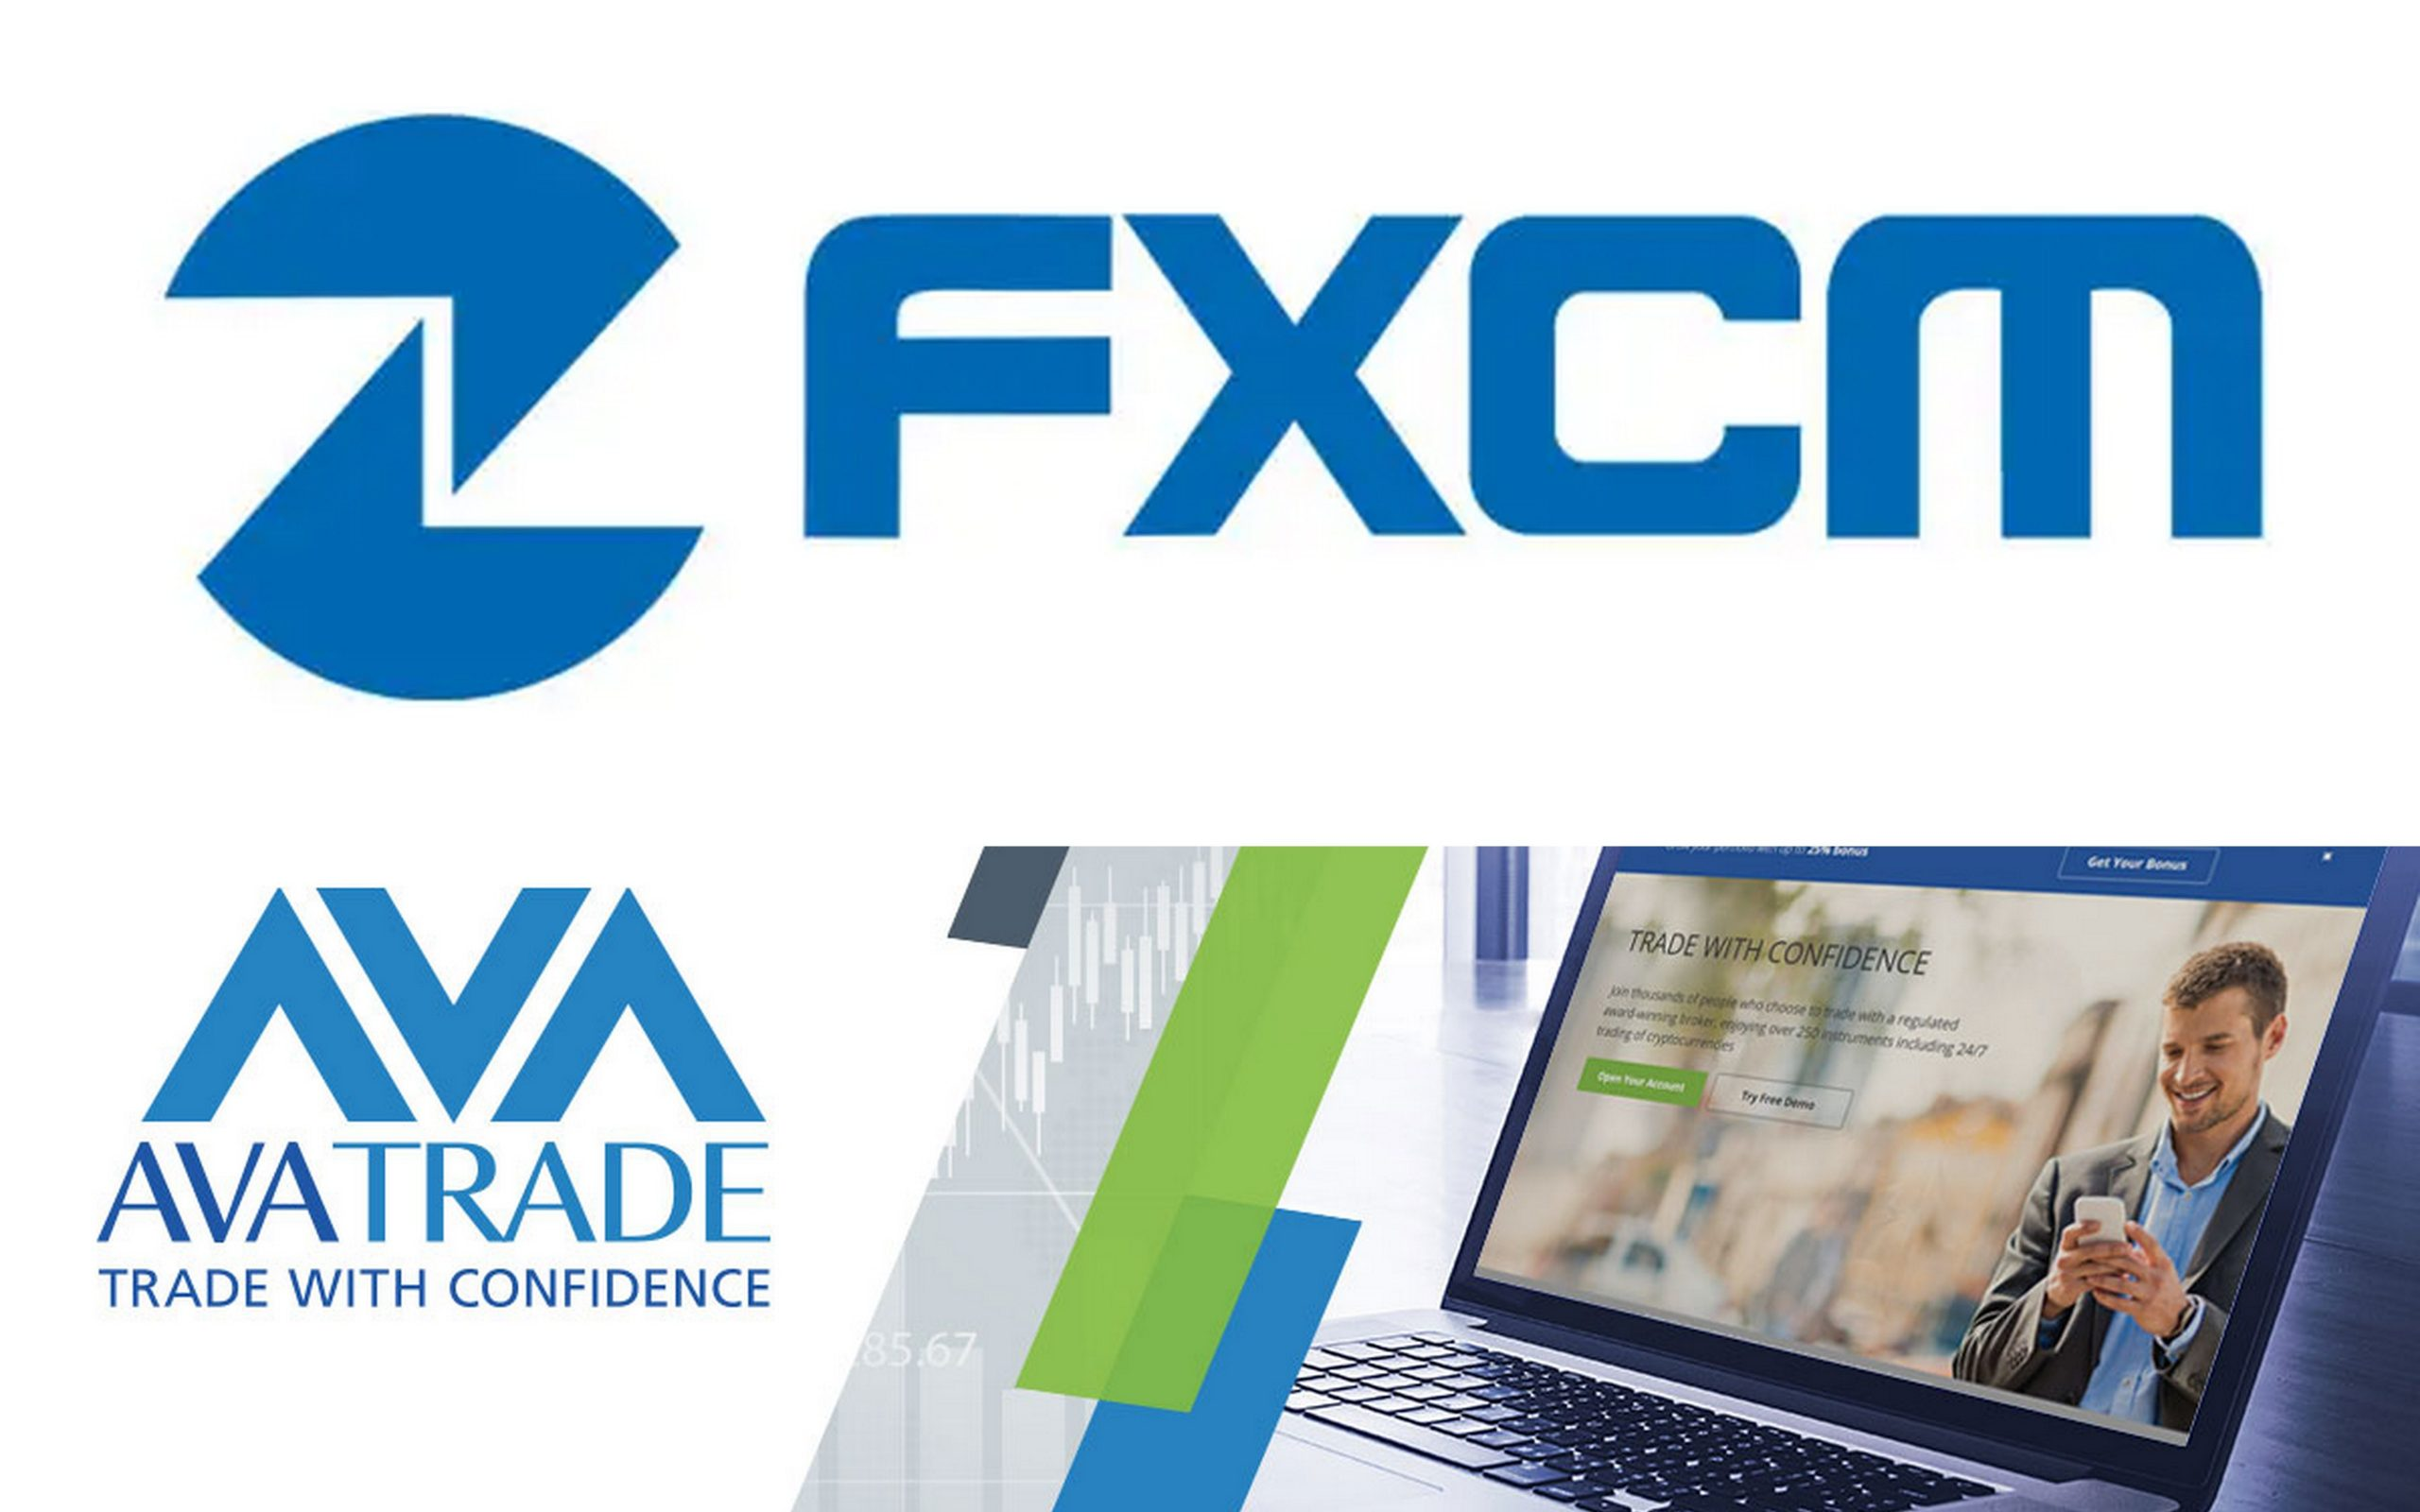 avatrade vs FXCM